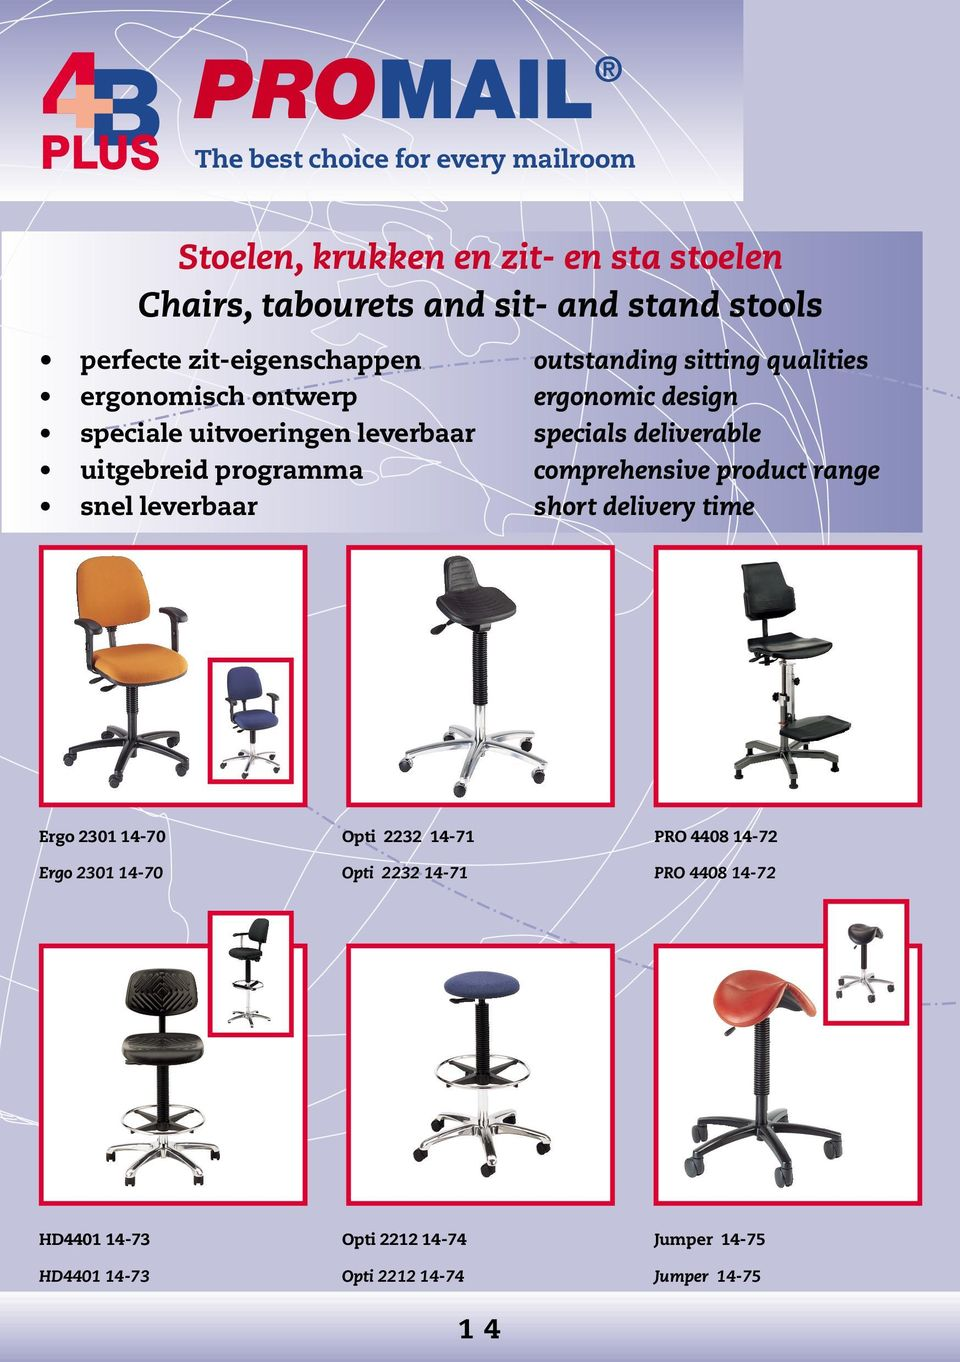 programma comprehensive product range snel leverbaar short delivery time Ergo 2301 14-70 Opti 2232 14-71 PRO 4408 14-72